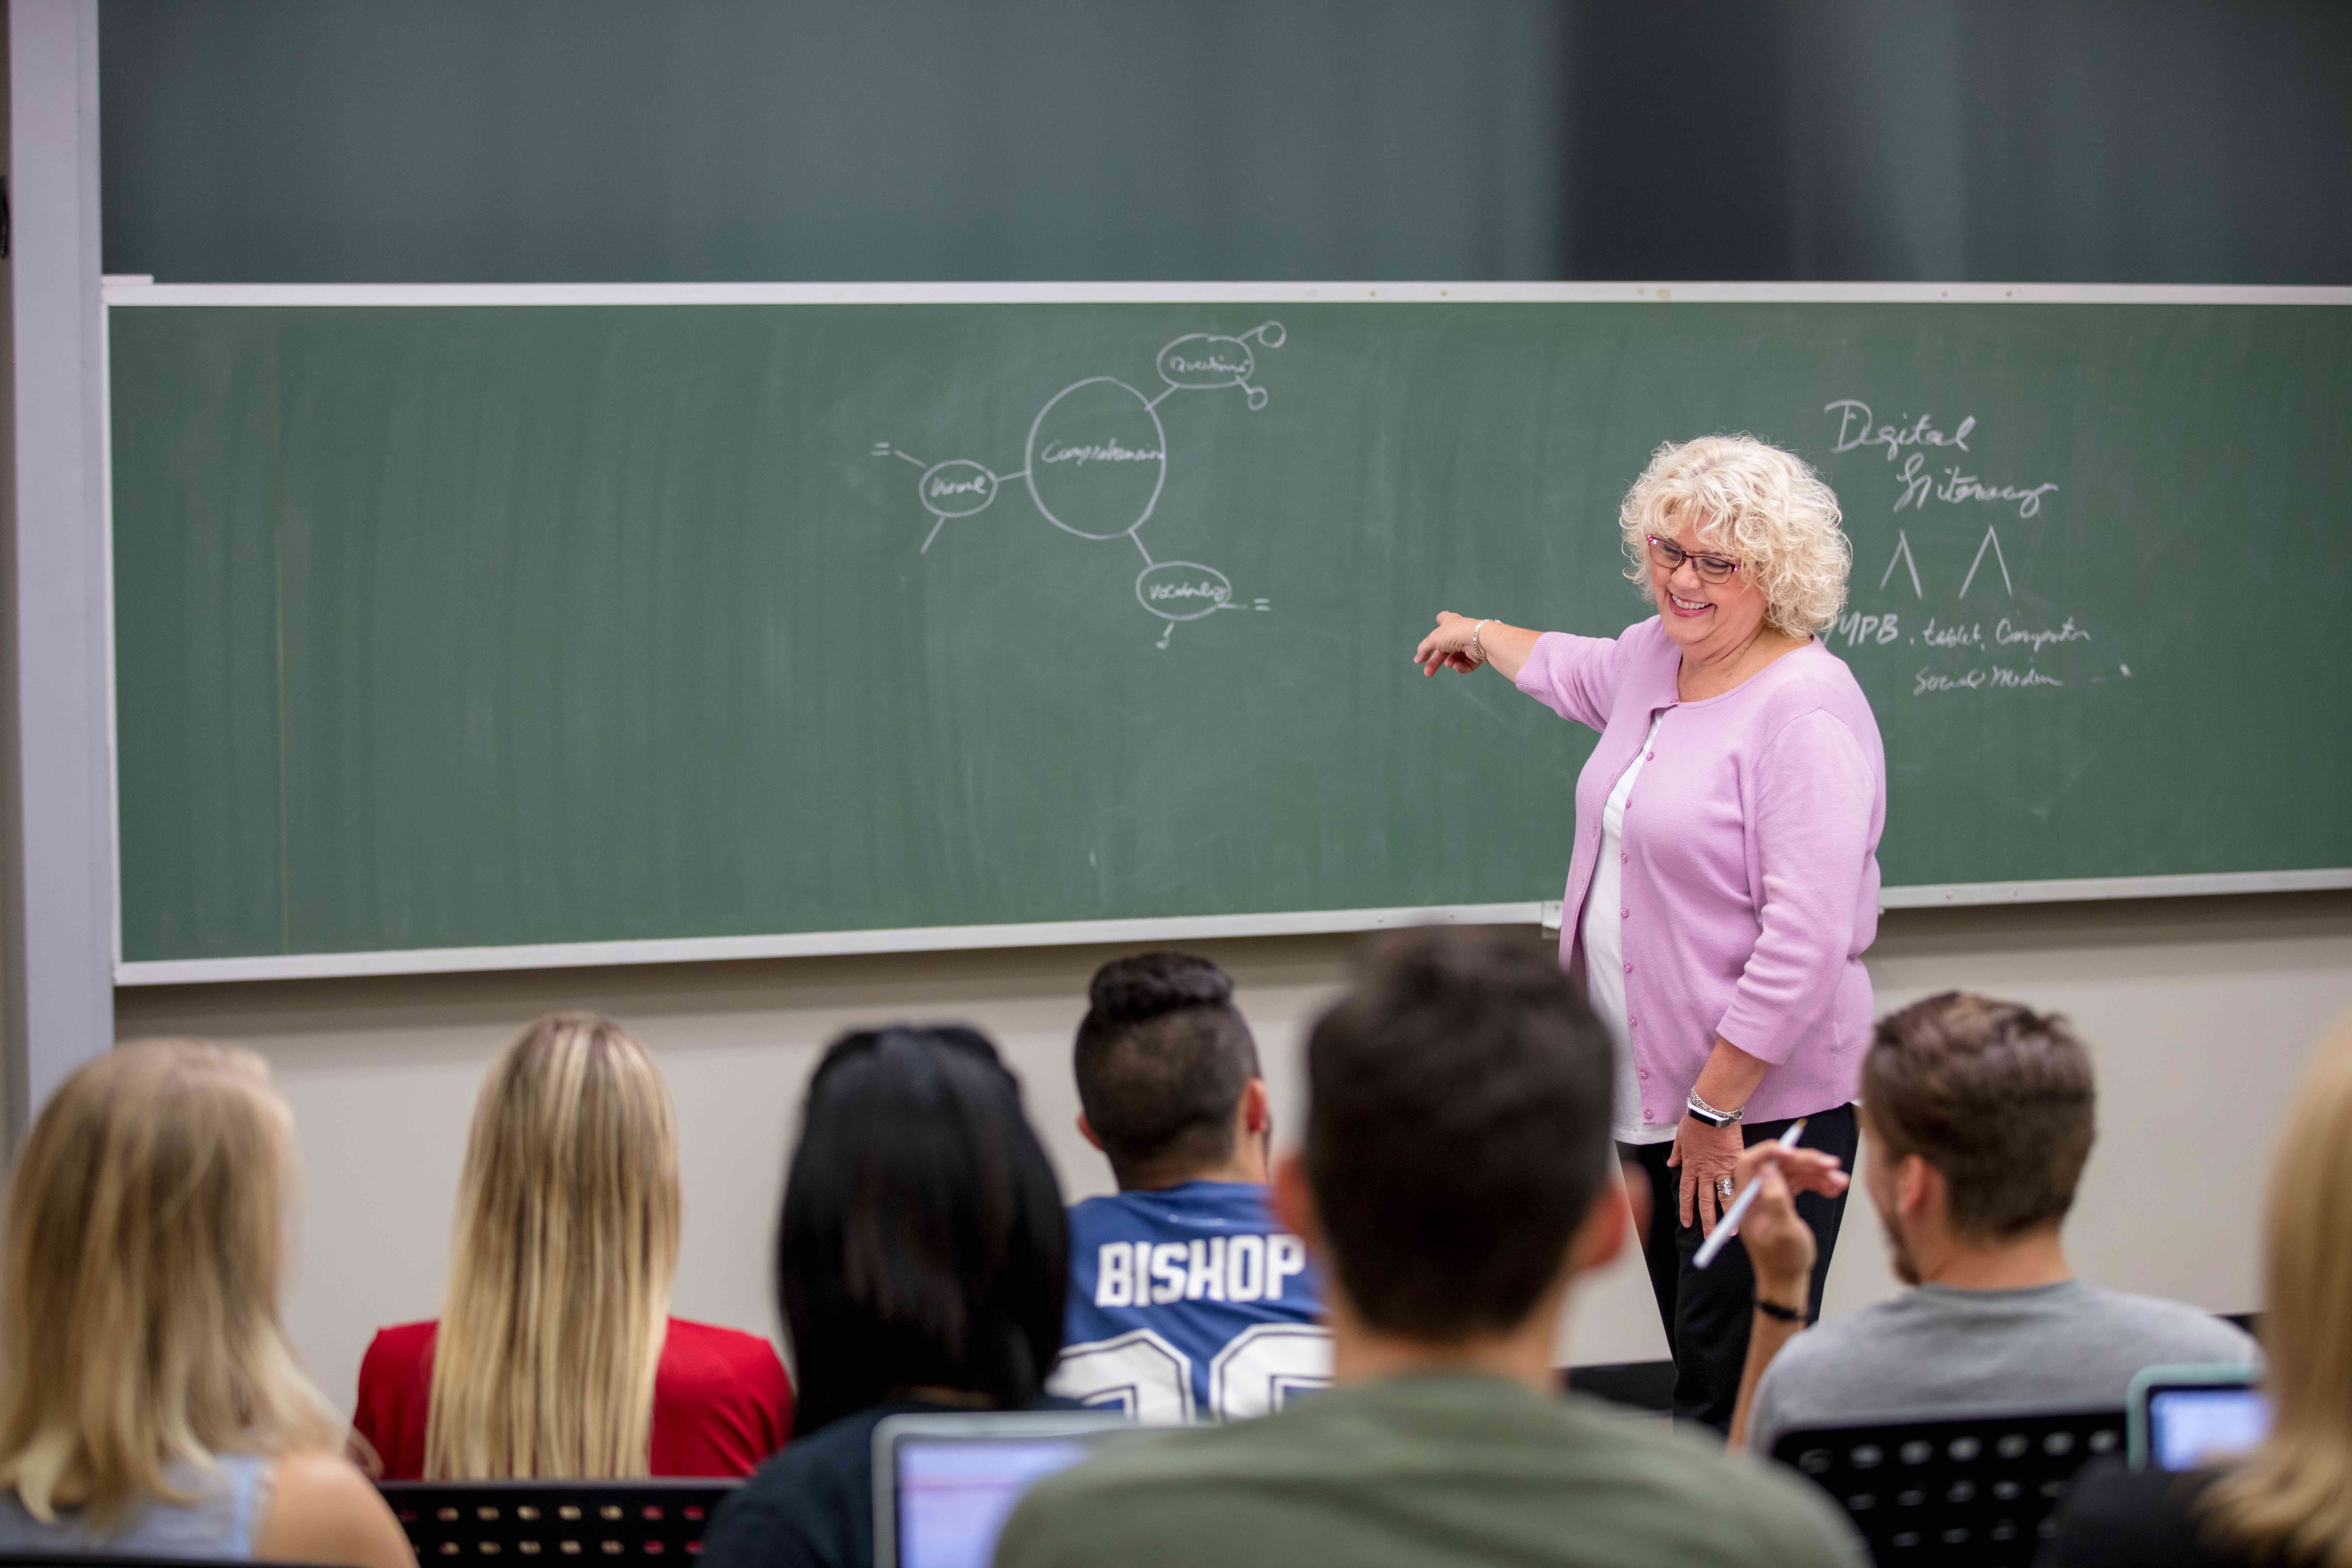 Debbie Paine teaching students in her classroom.